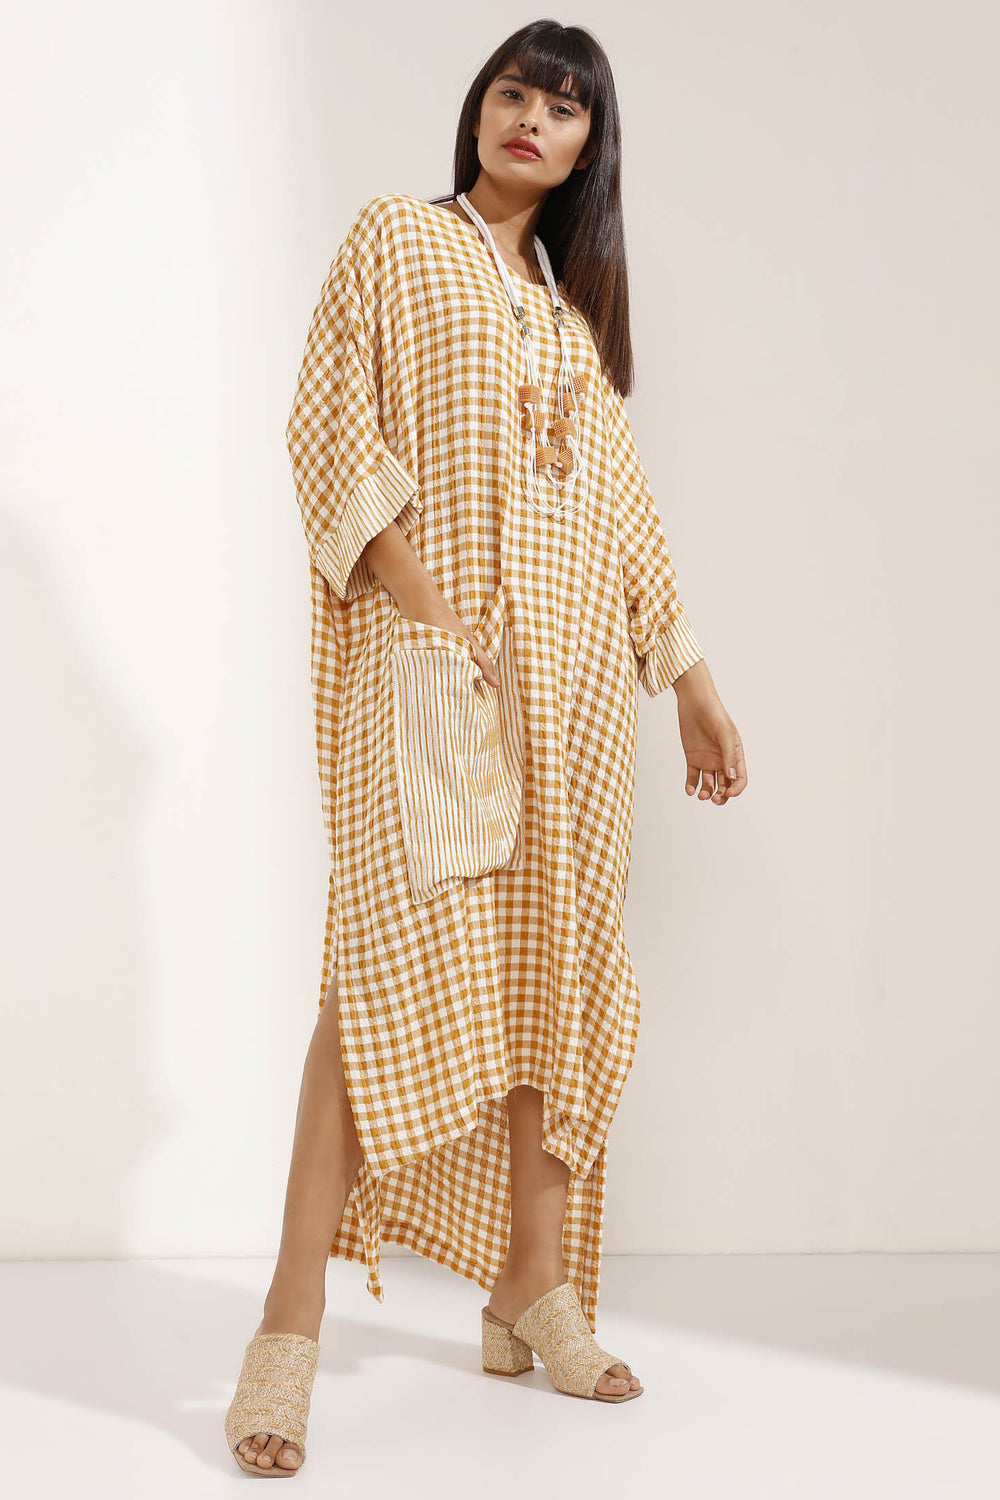 Store WF Mustard Checked Linen Maxi Dress with Necklace Modest Loose Fitting Yellow Dress with PocketStore WF Mustard Checked Linen Maxi Dress with Necklace Modest Loose Fitting Yellow Dress with Oversized Pocket and Attached Necklace in 100% linen